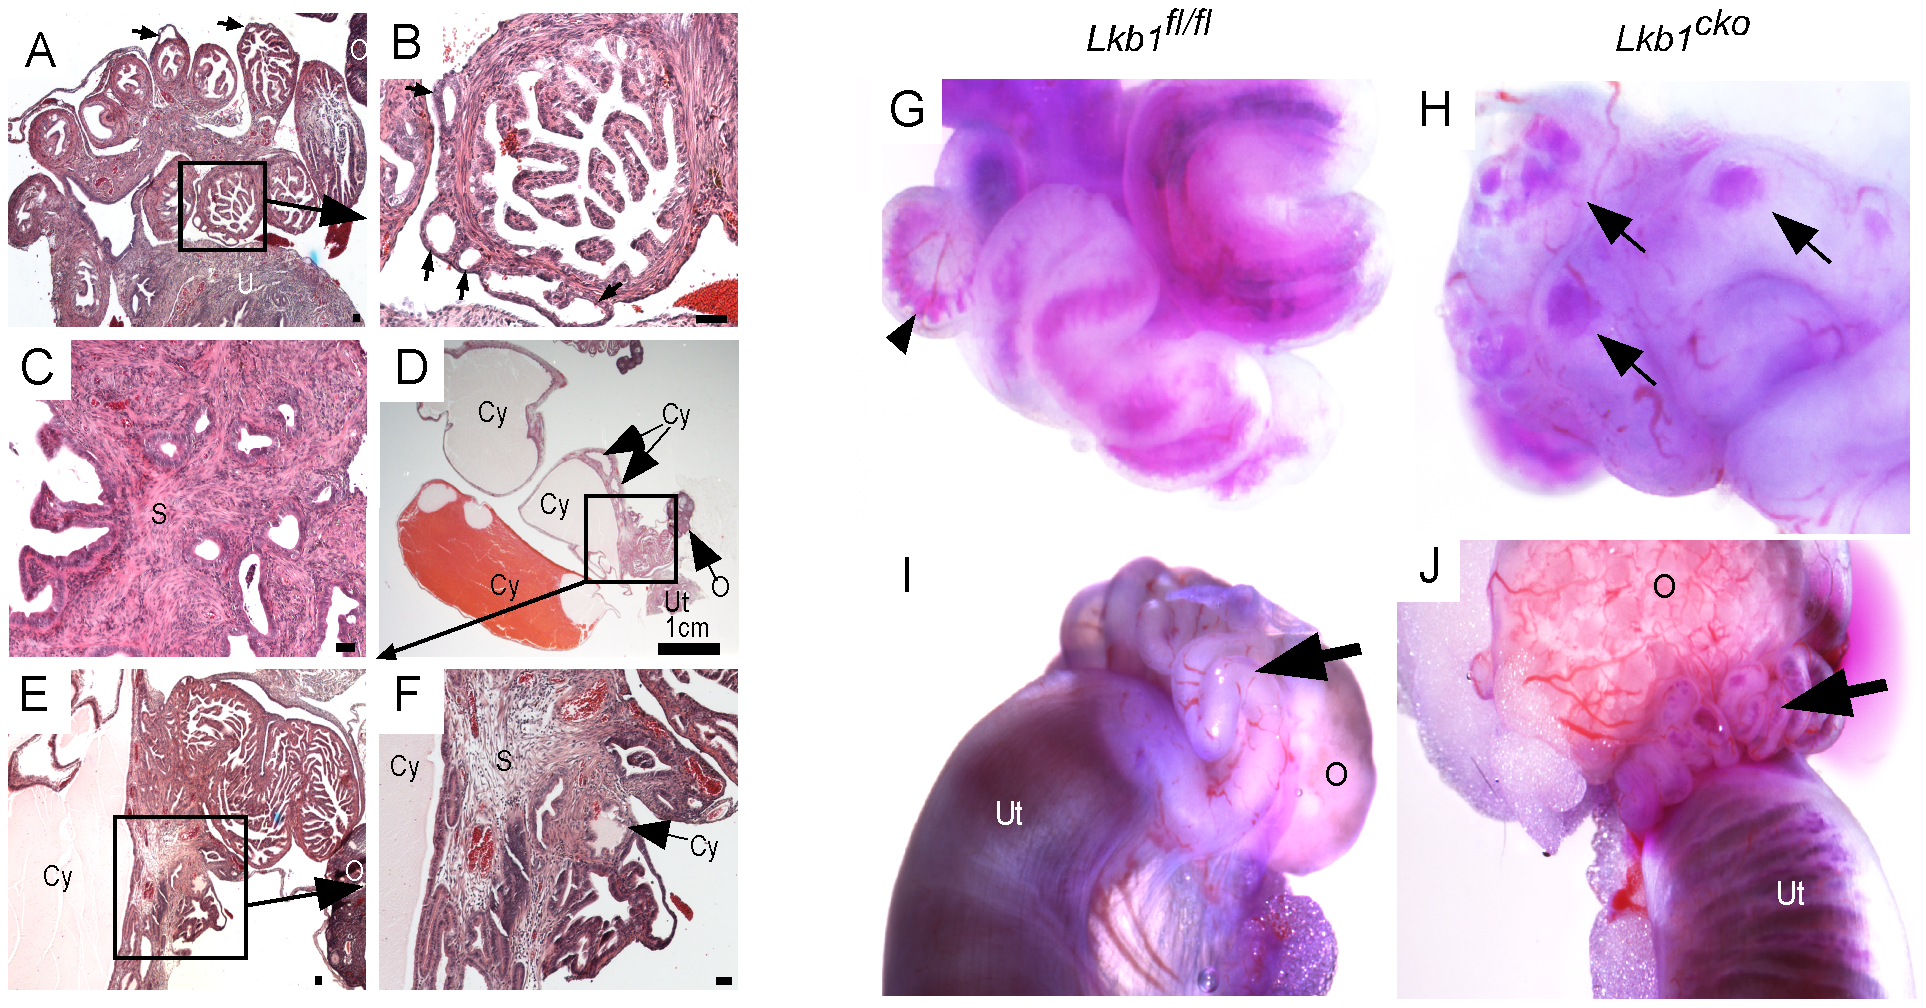 Hyperplastic and/or cystic growth in oviducts of <i>Lkb1<sup>cko</sup></i> mice.